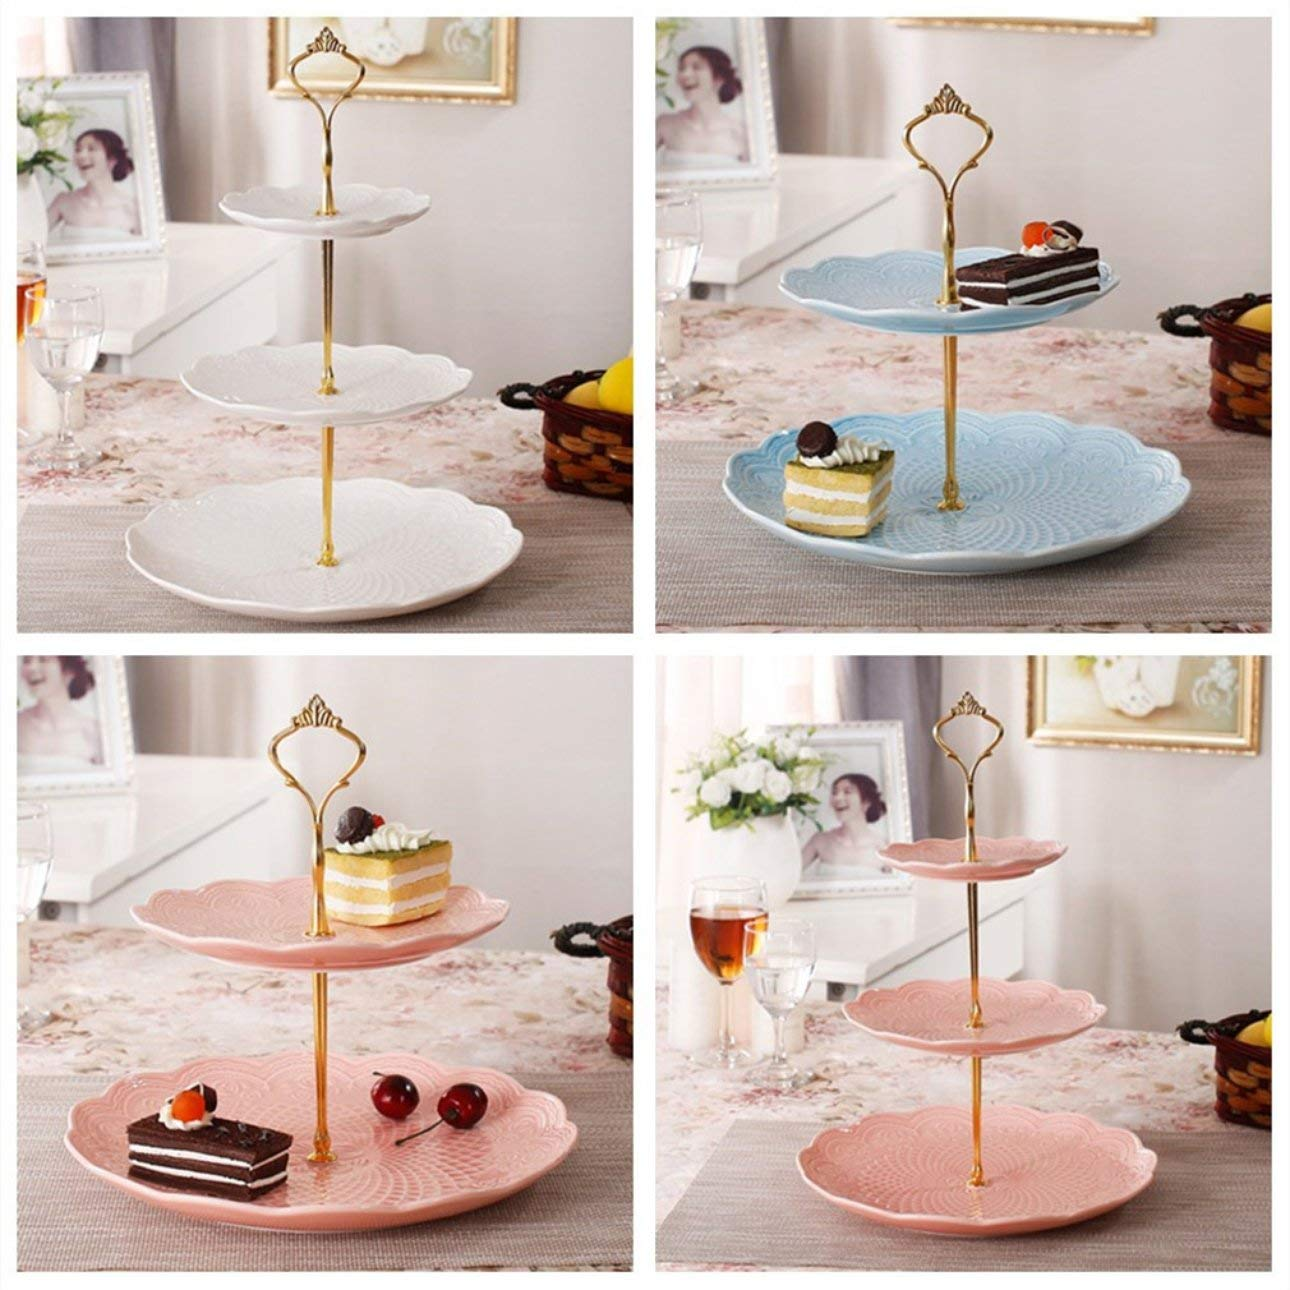 Liobaba 3 Tier Hardware Crown Cake Plate Stand Handle Fitting Wedding Party Golden Plated Decorating Stand Platform Cupcake Stand by Liobaba (Image #2)